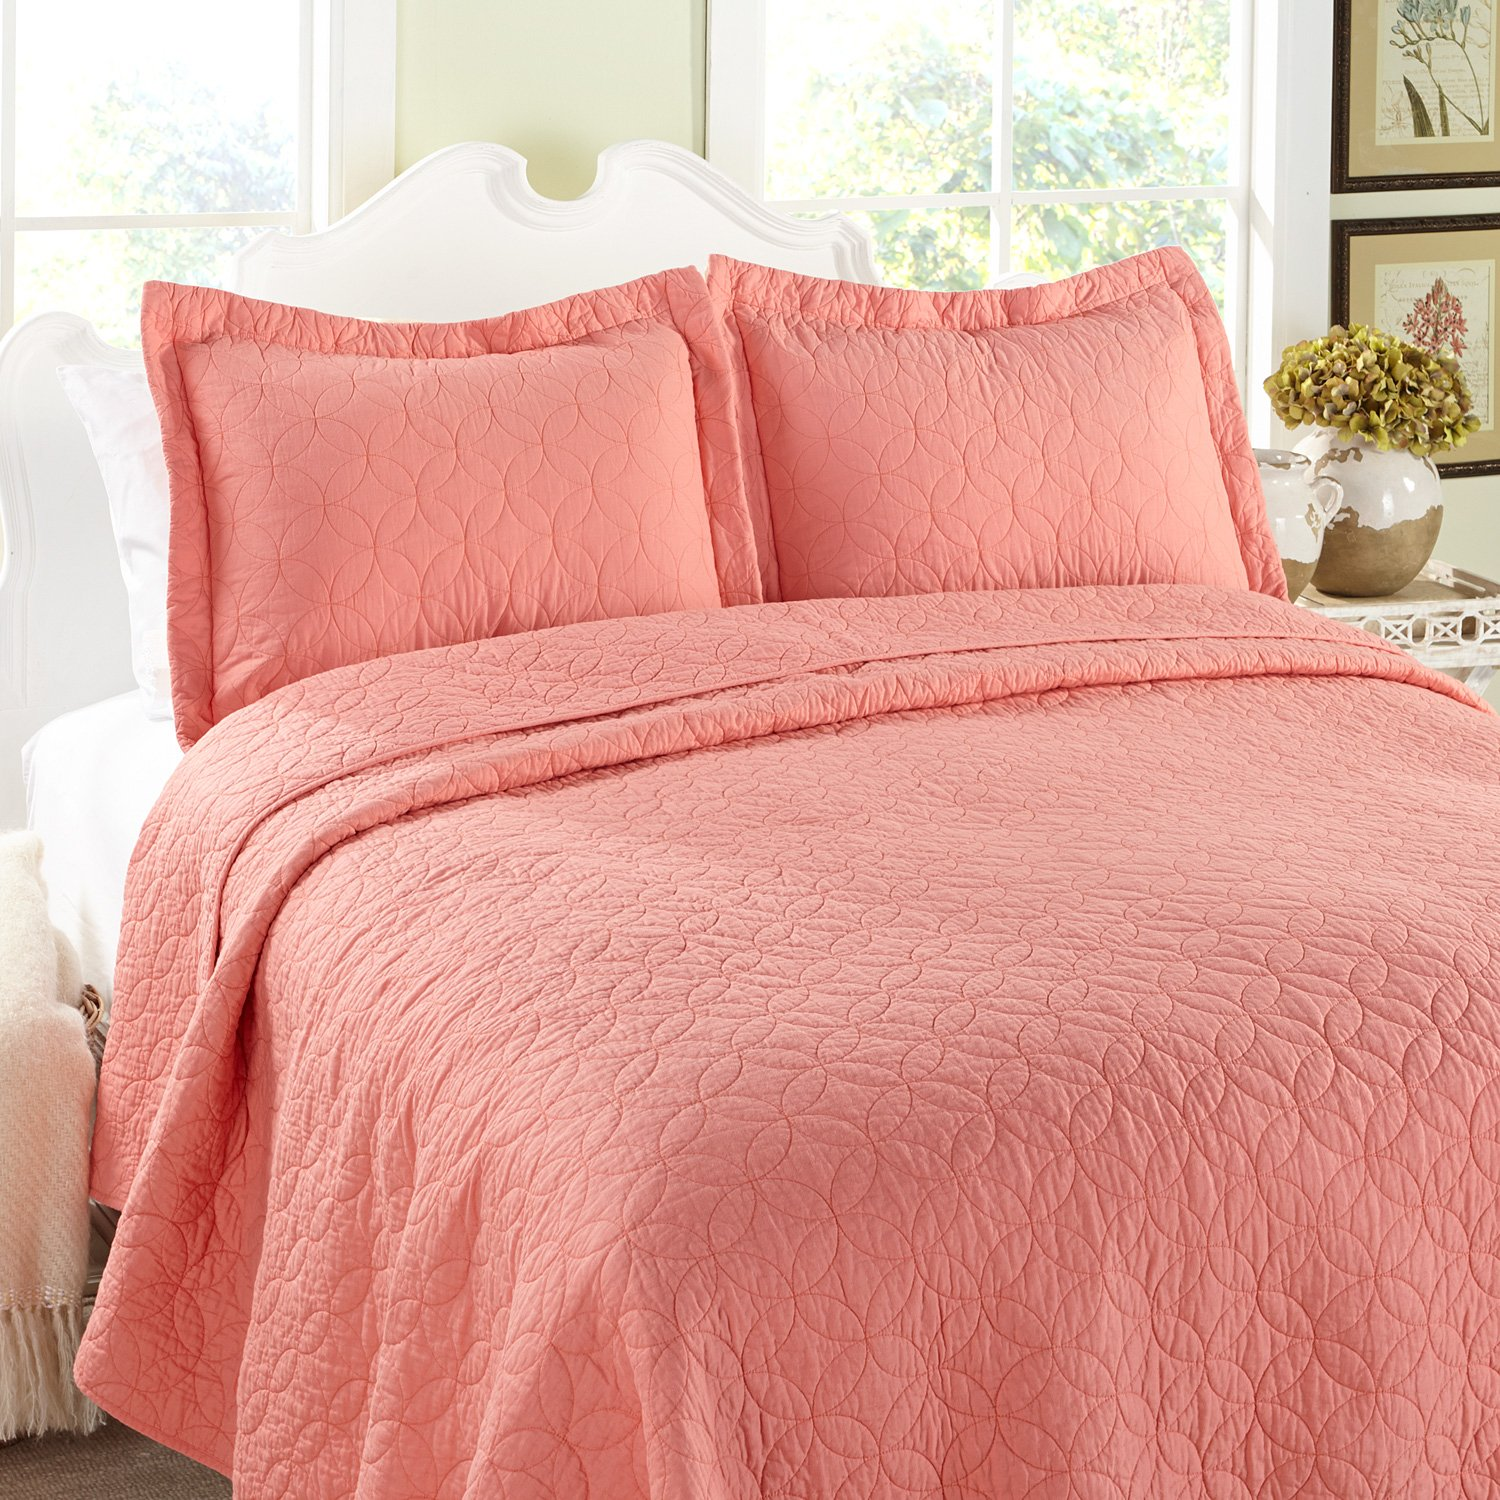 Amazon Laura Ashley Coral King Quilt Set Home & Kitchen